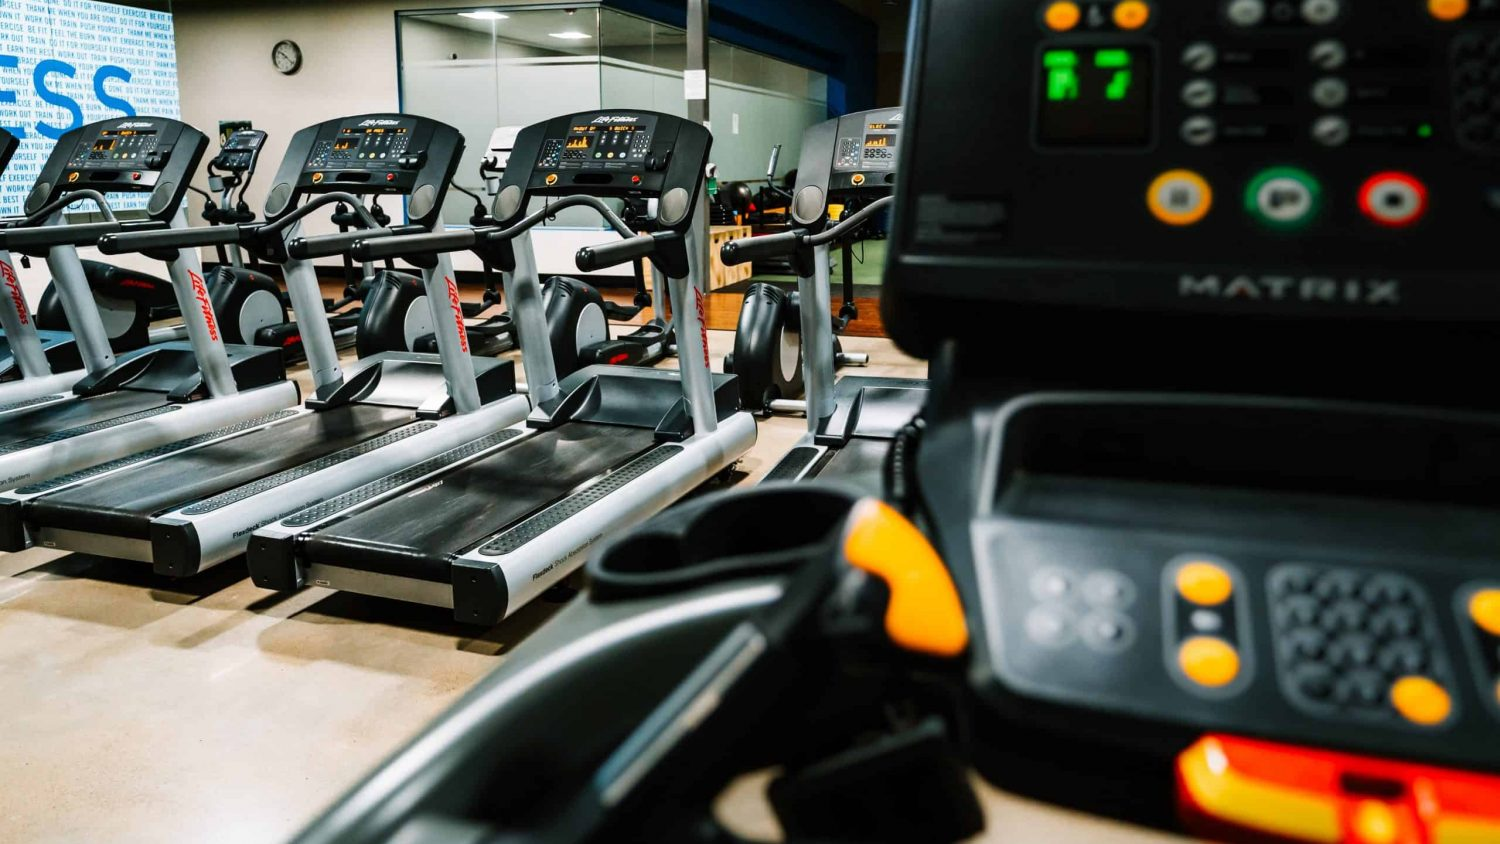 Find the Best Treadmill for Beginners – Our Guide to Help You Start Strong